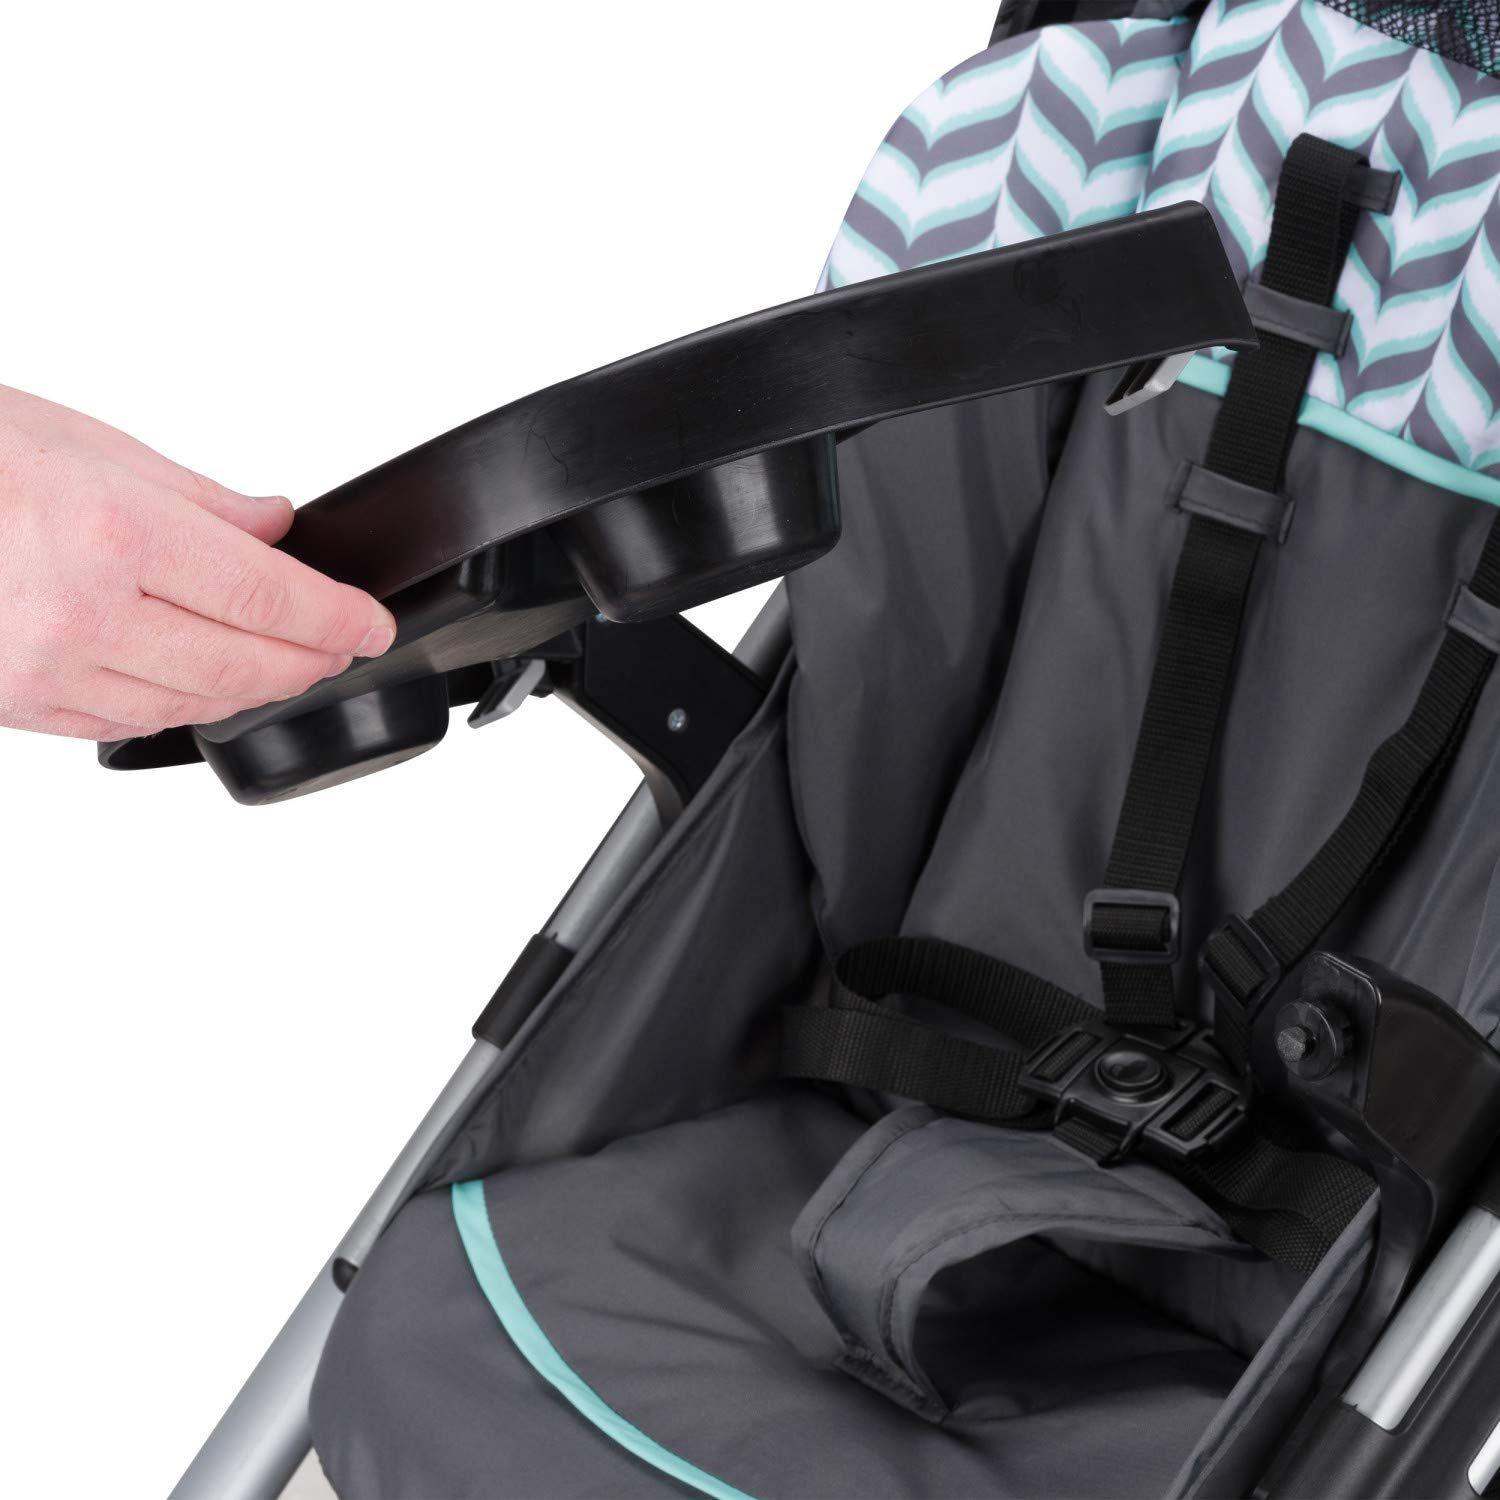 Evenflo Vive Travel System with Embrace Infant Car Seat, Spearmint Spree by Evenflo (Image #13)